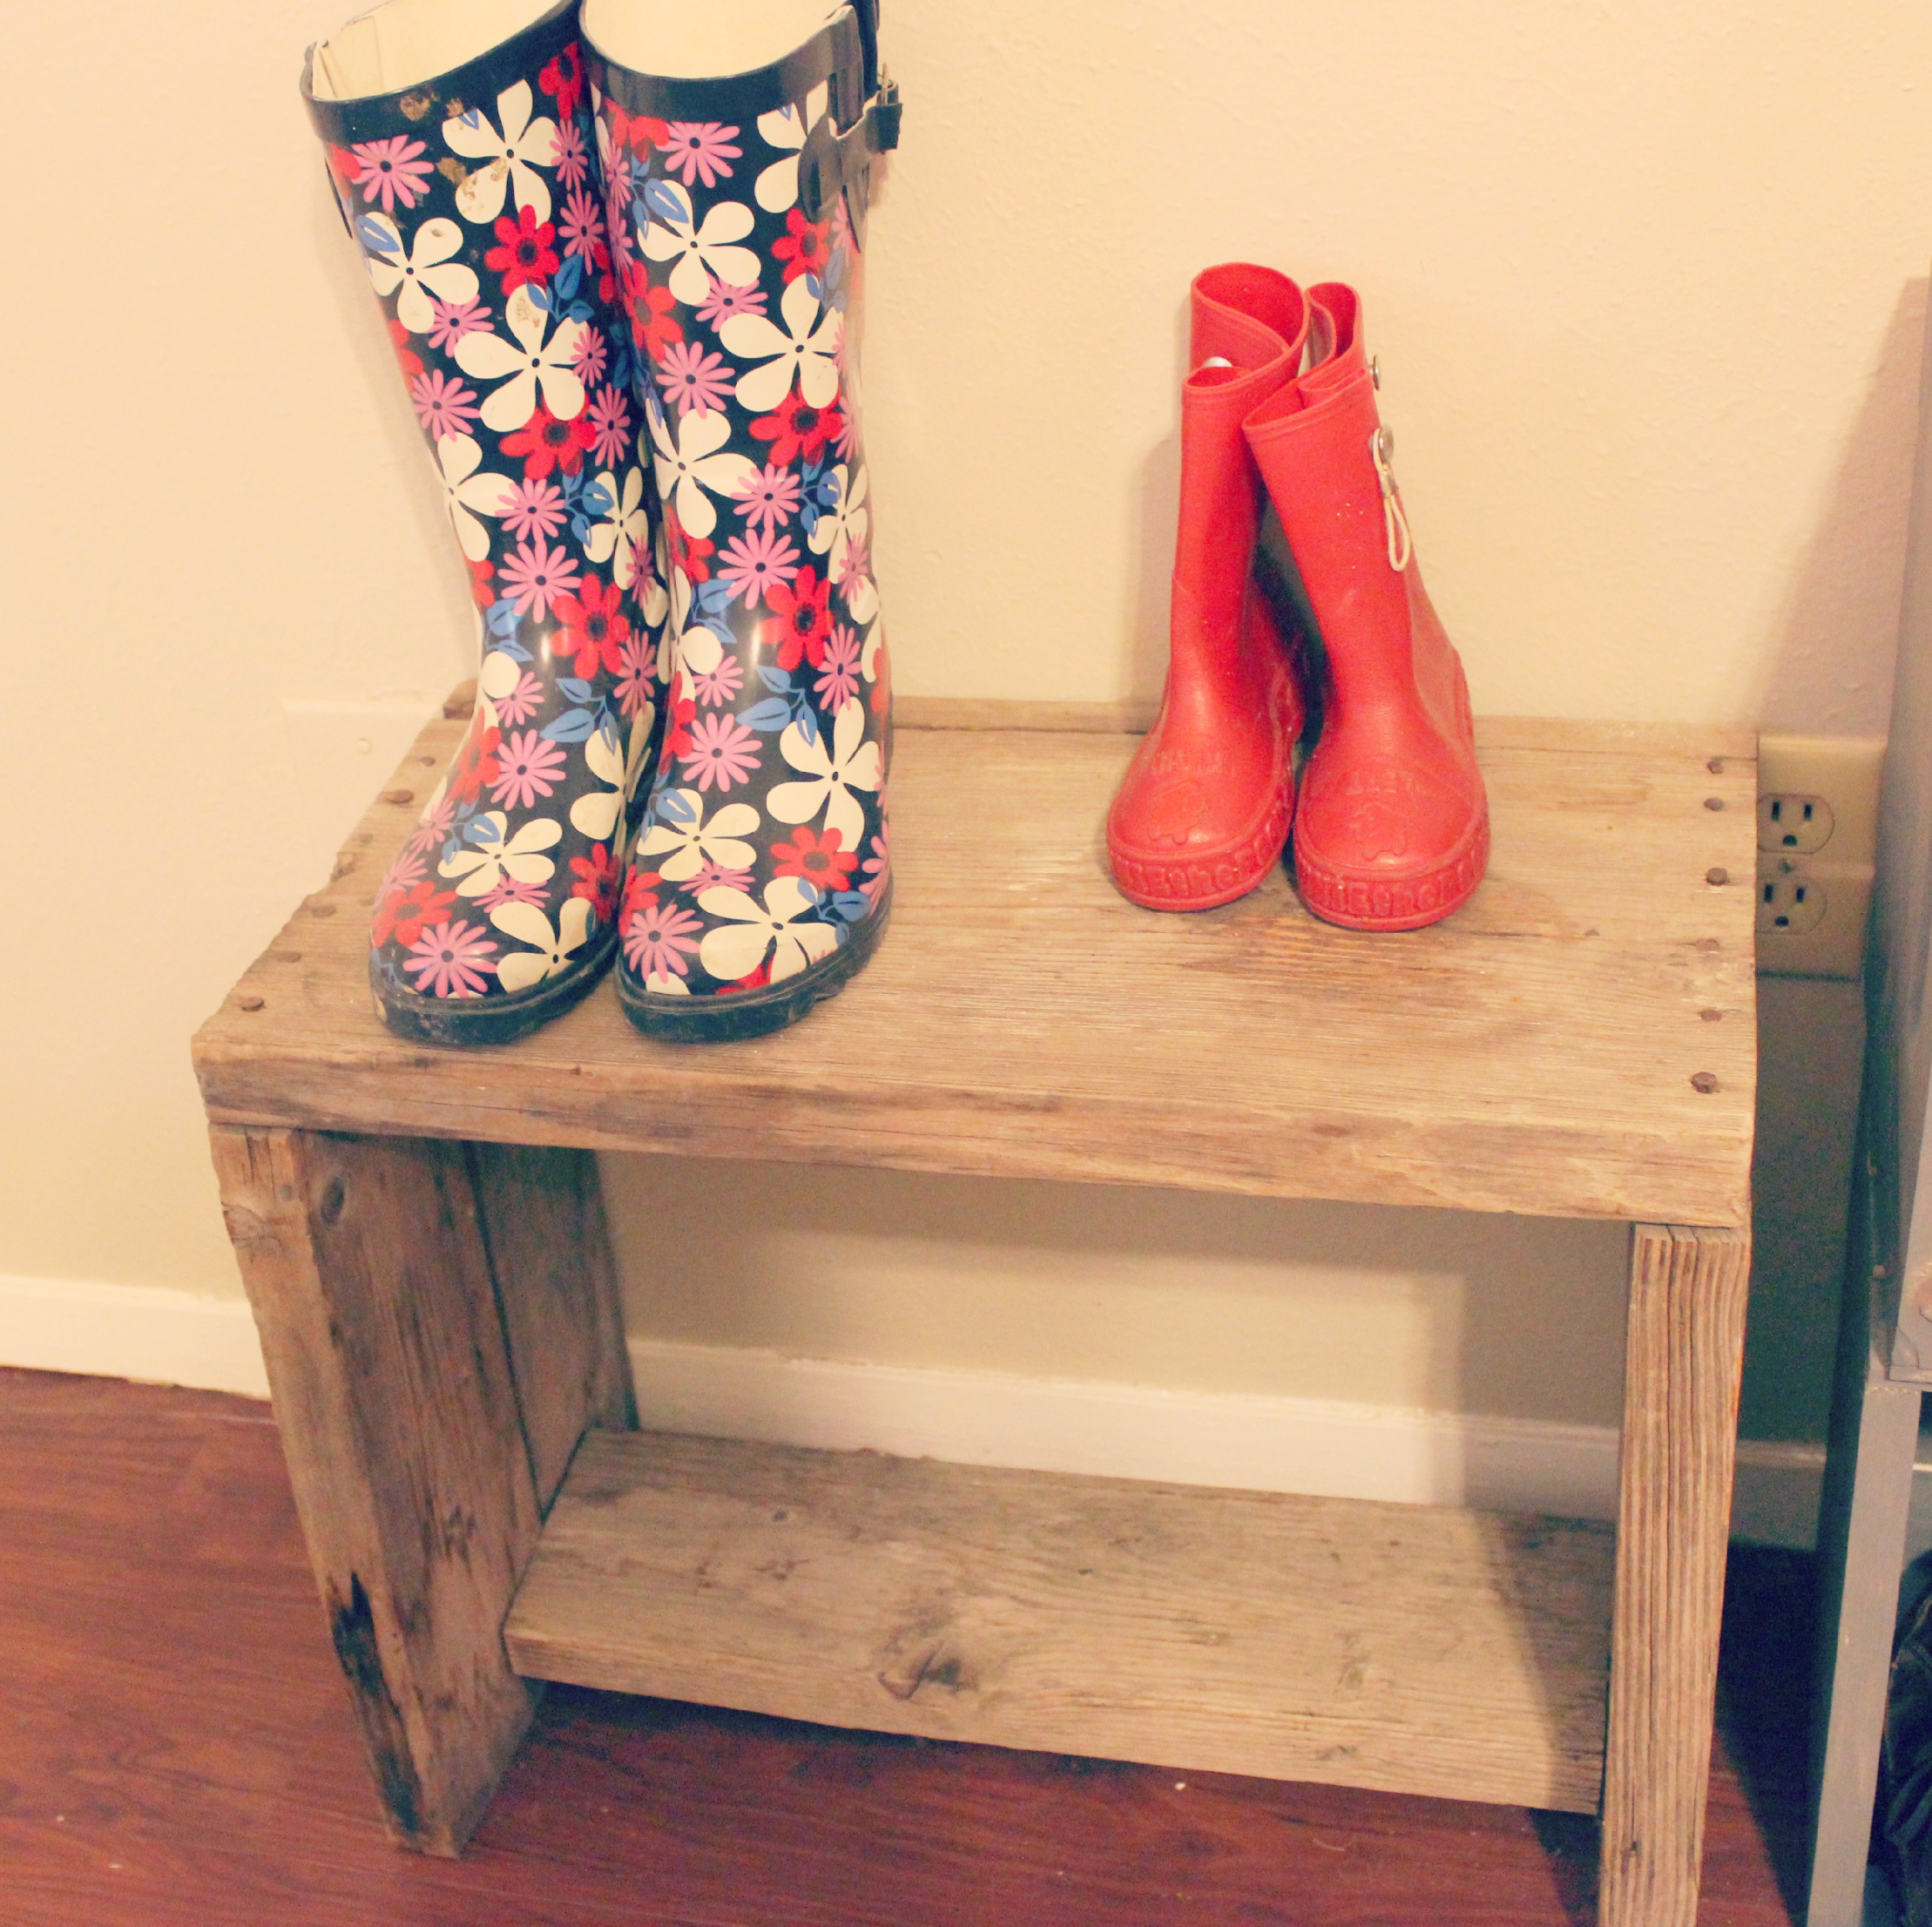 Rustic shoe bench